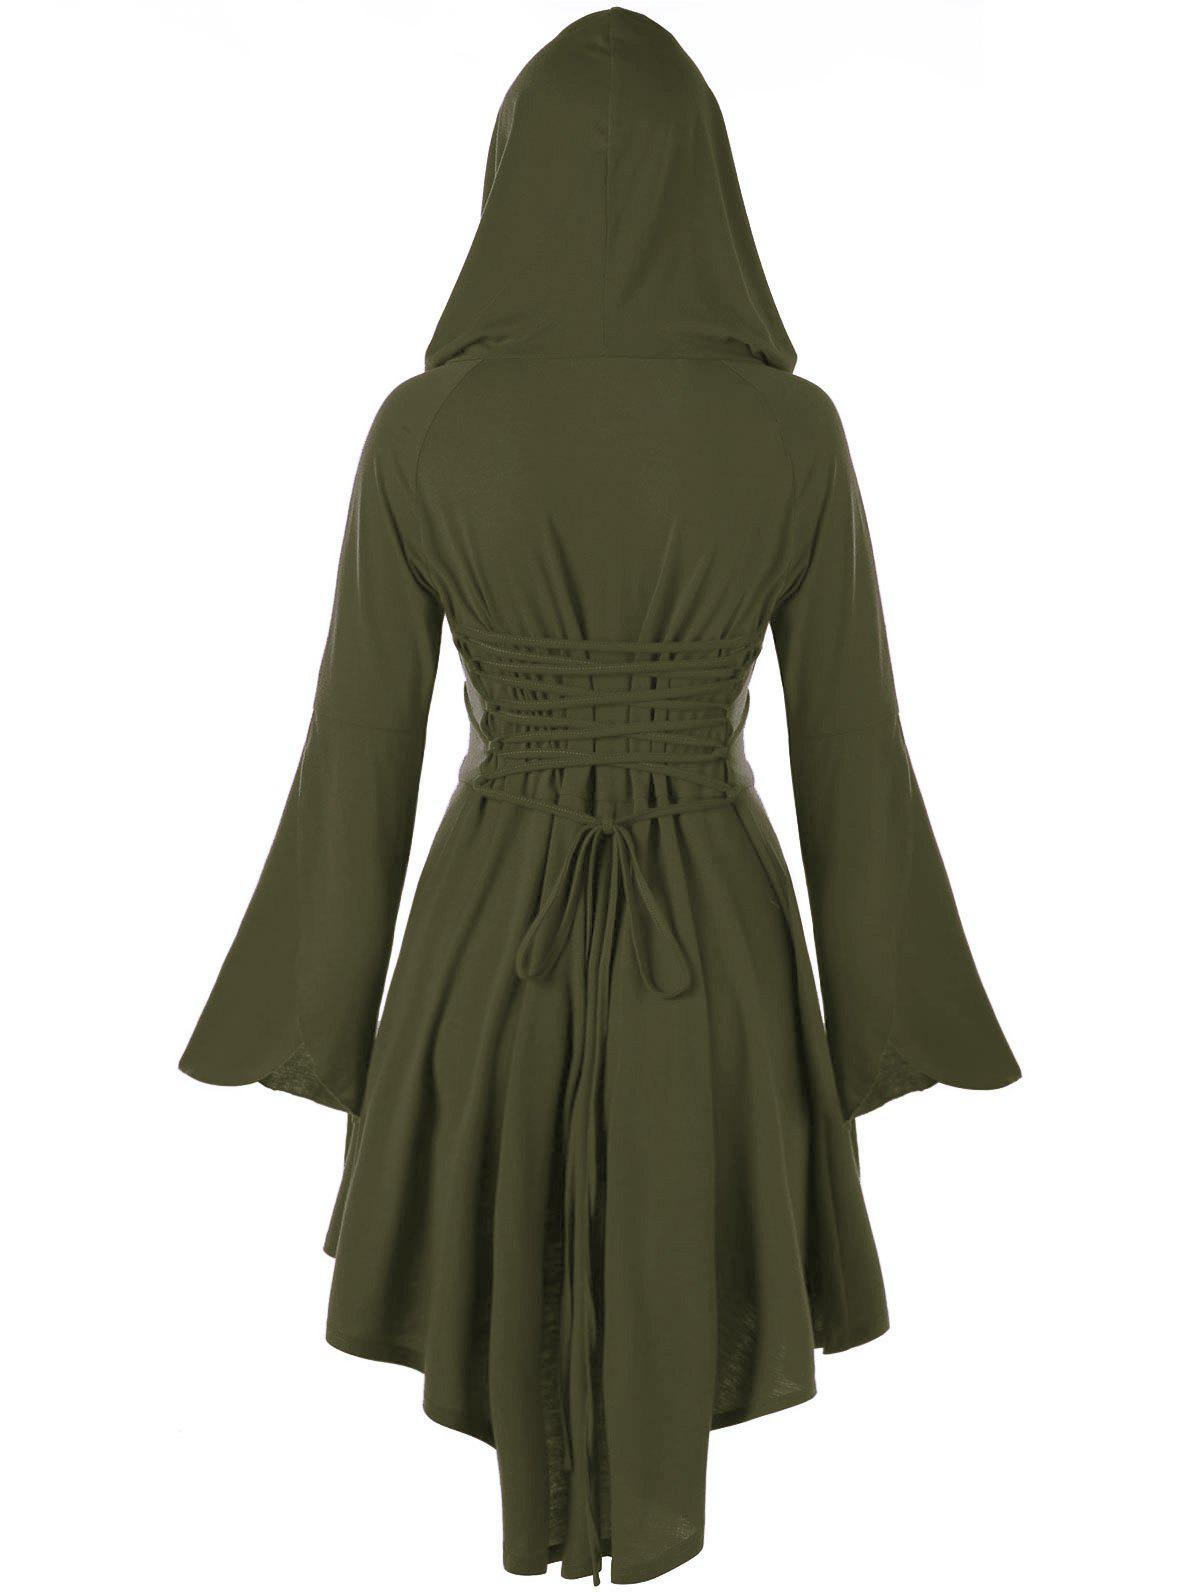 High Low Flare Sleeve Hooded Lace-up DressWOMEN<br><br>Size: 2XL; Color: ARMY GREEN; Style: Cute; Material: Polyester,Spandex; Silhouette: Asymmetrical; Dresses Length: Knee-Length; Neckline: Hooded; Sleeve Length: Long Sleeves; Pattern Type: Solid; With Belt: No; Season: Fall,Spring; Weight: 0.4740kg; Package Contents: 1 x Dress;